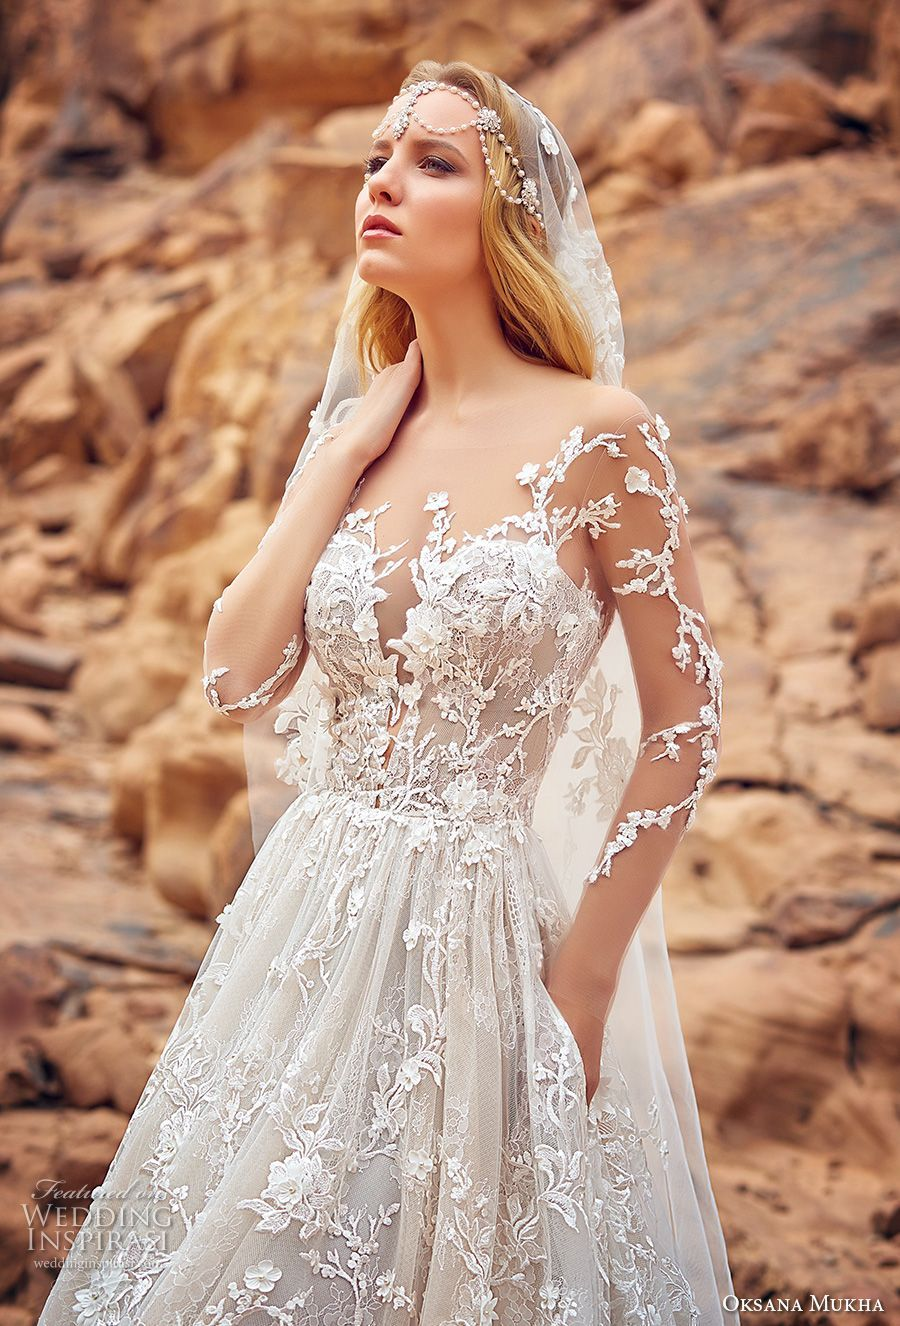 Oksana mukha wedding dresses in weddings pinterest